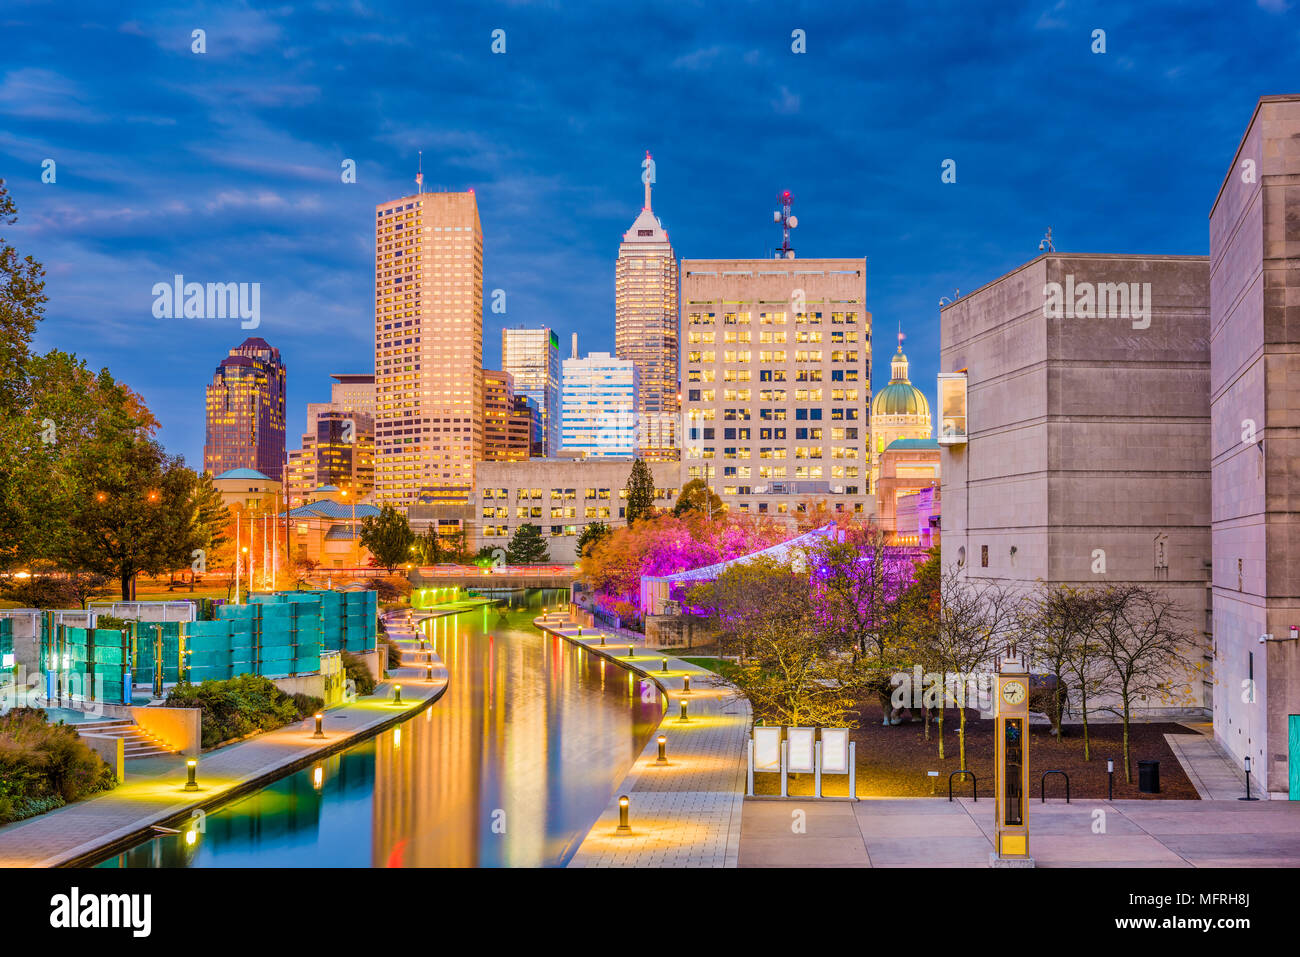 indianapolis indiana usa downtown skyline over the river walk